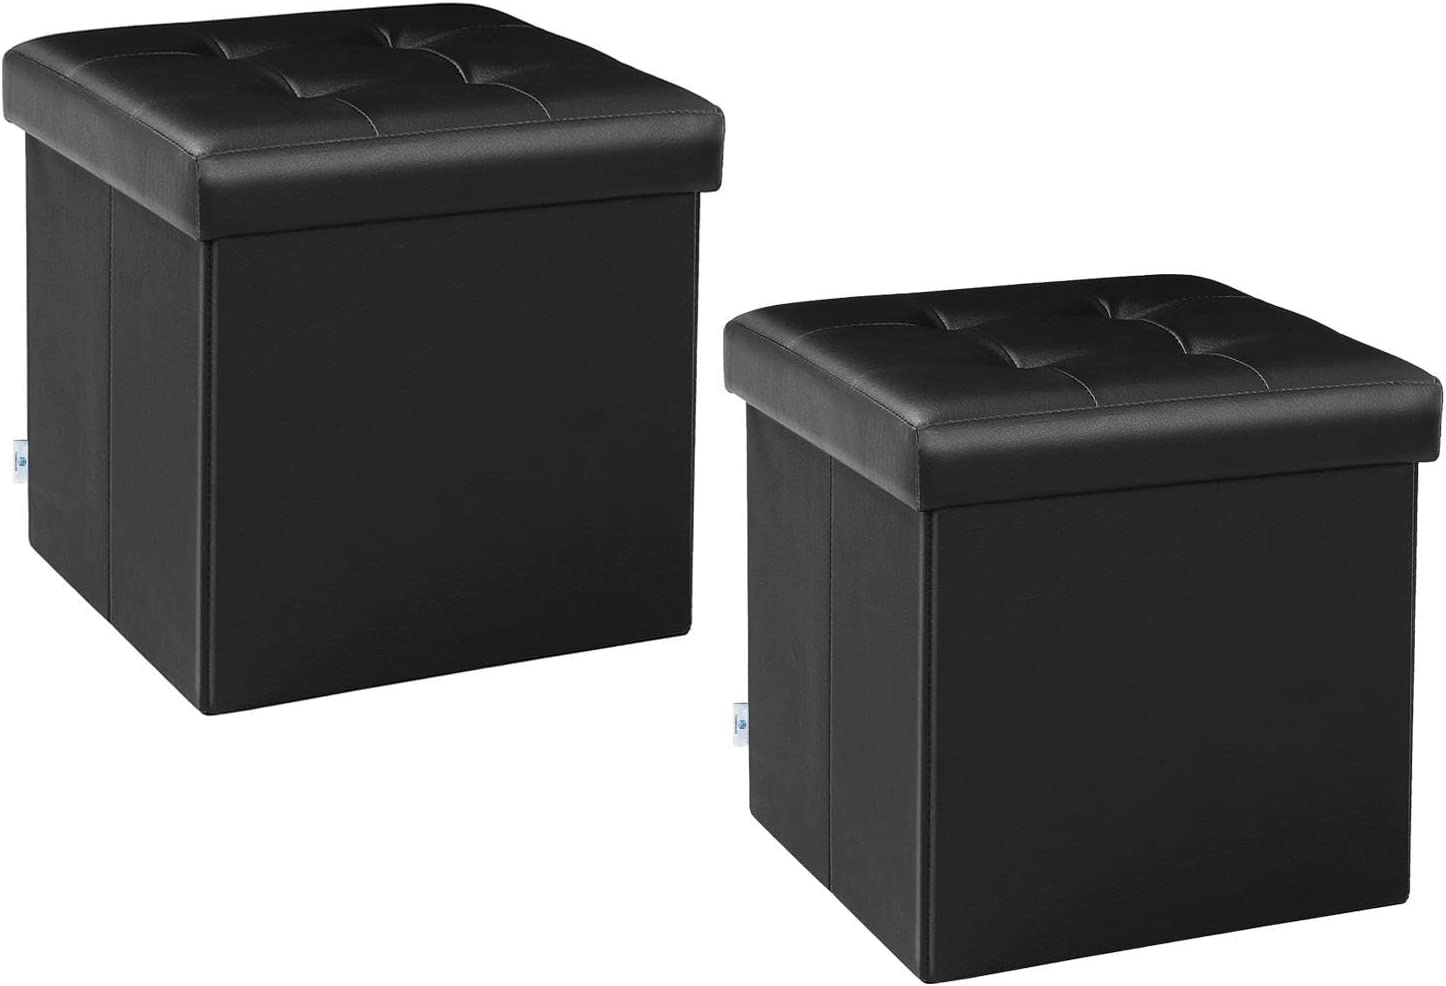 """B FSOBEIIALEO Storage Ottoman Small Cube Footrest Stool Seat Faux Leather Toy Chest Black 12.6""""X12.6""""X12.6"""" (2 Pack)"""